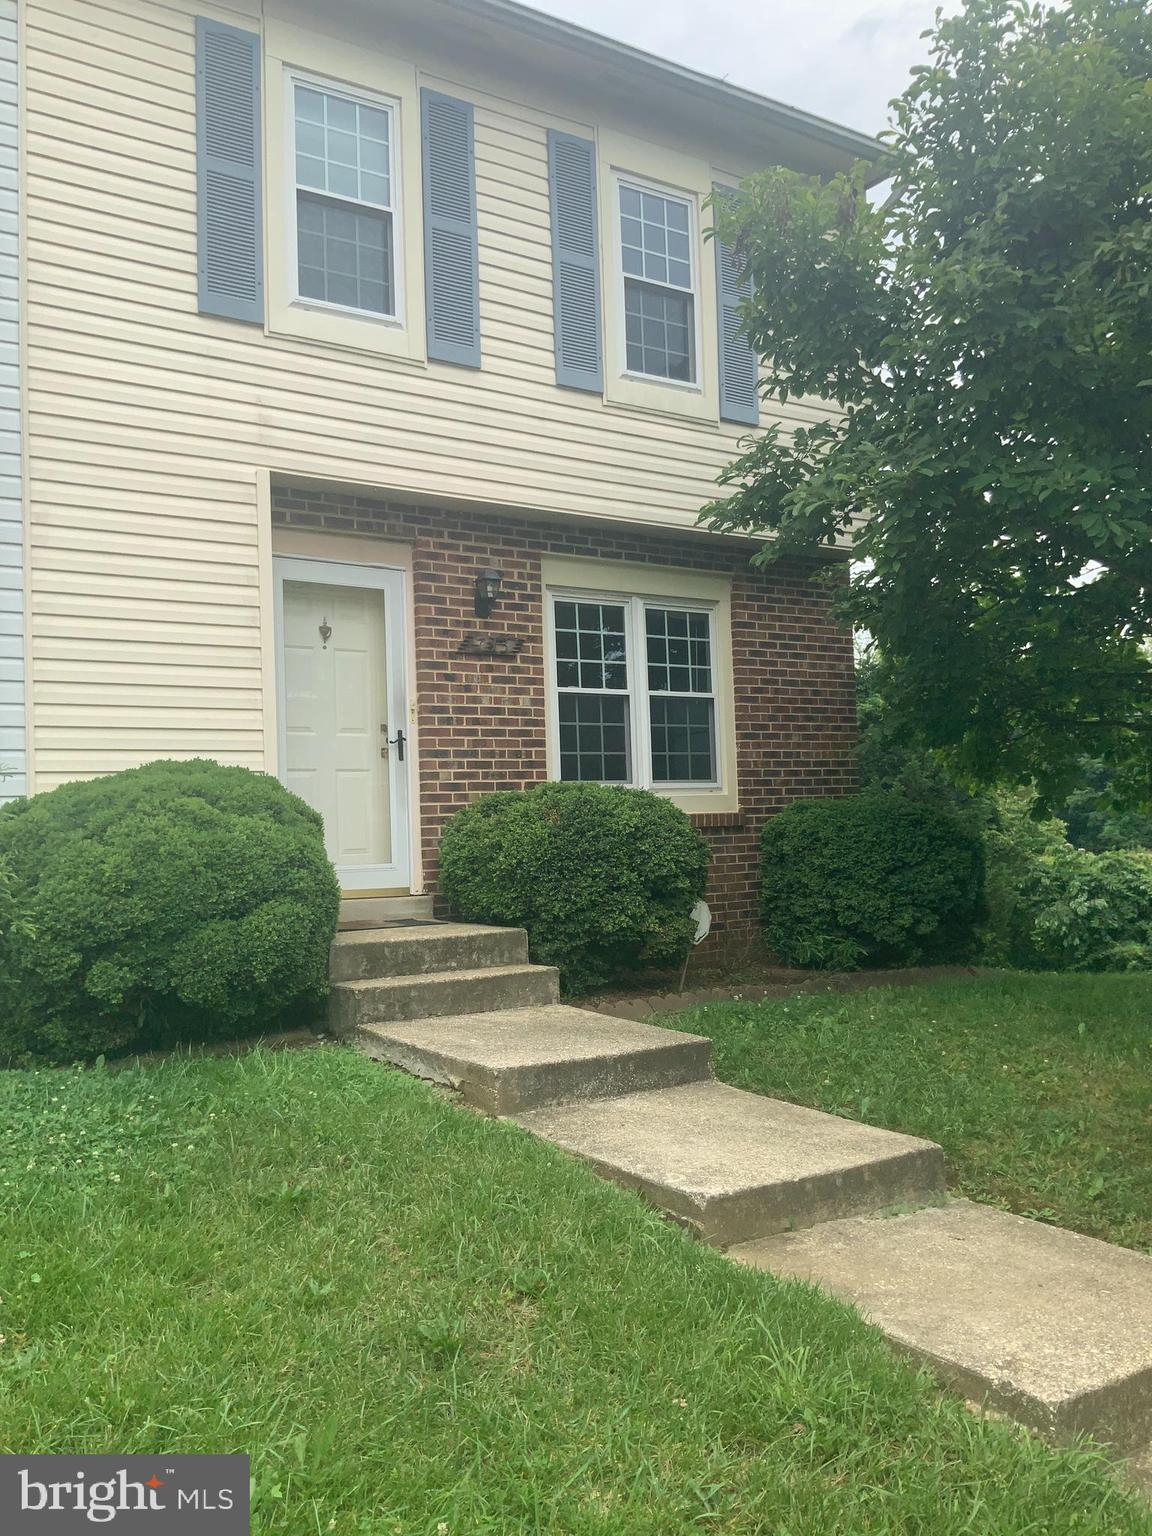 Perfect for First time buyers  Great Location,  close to transportation and shopping. Has 3 BR, 2 Fu